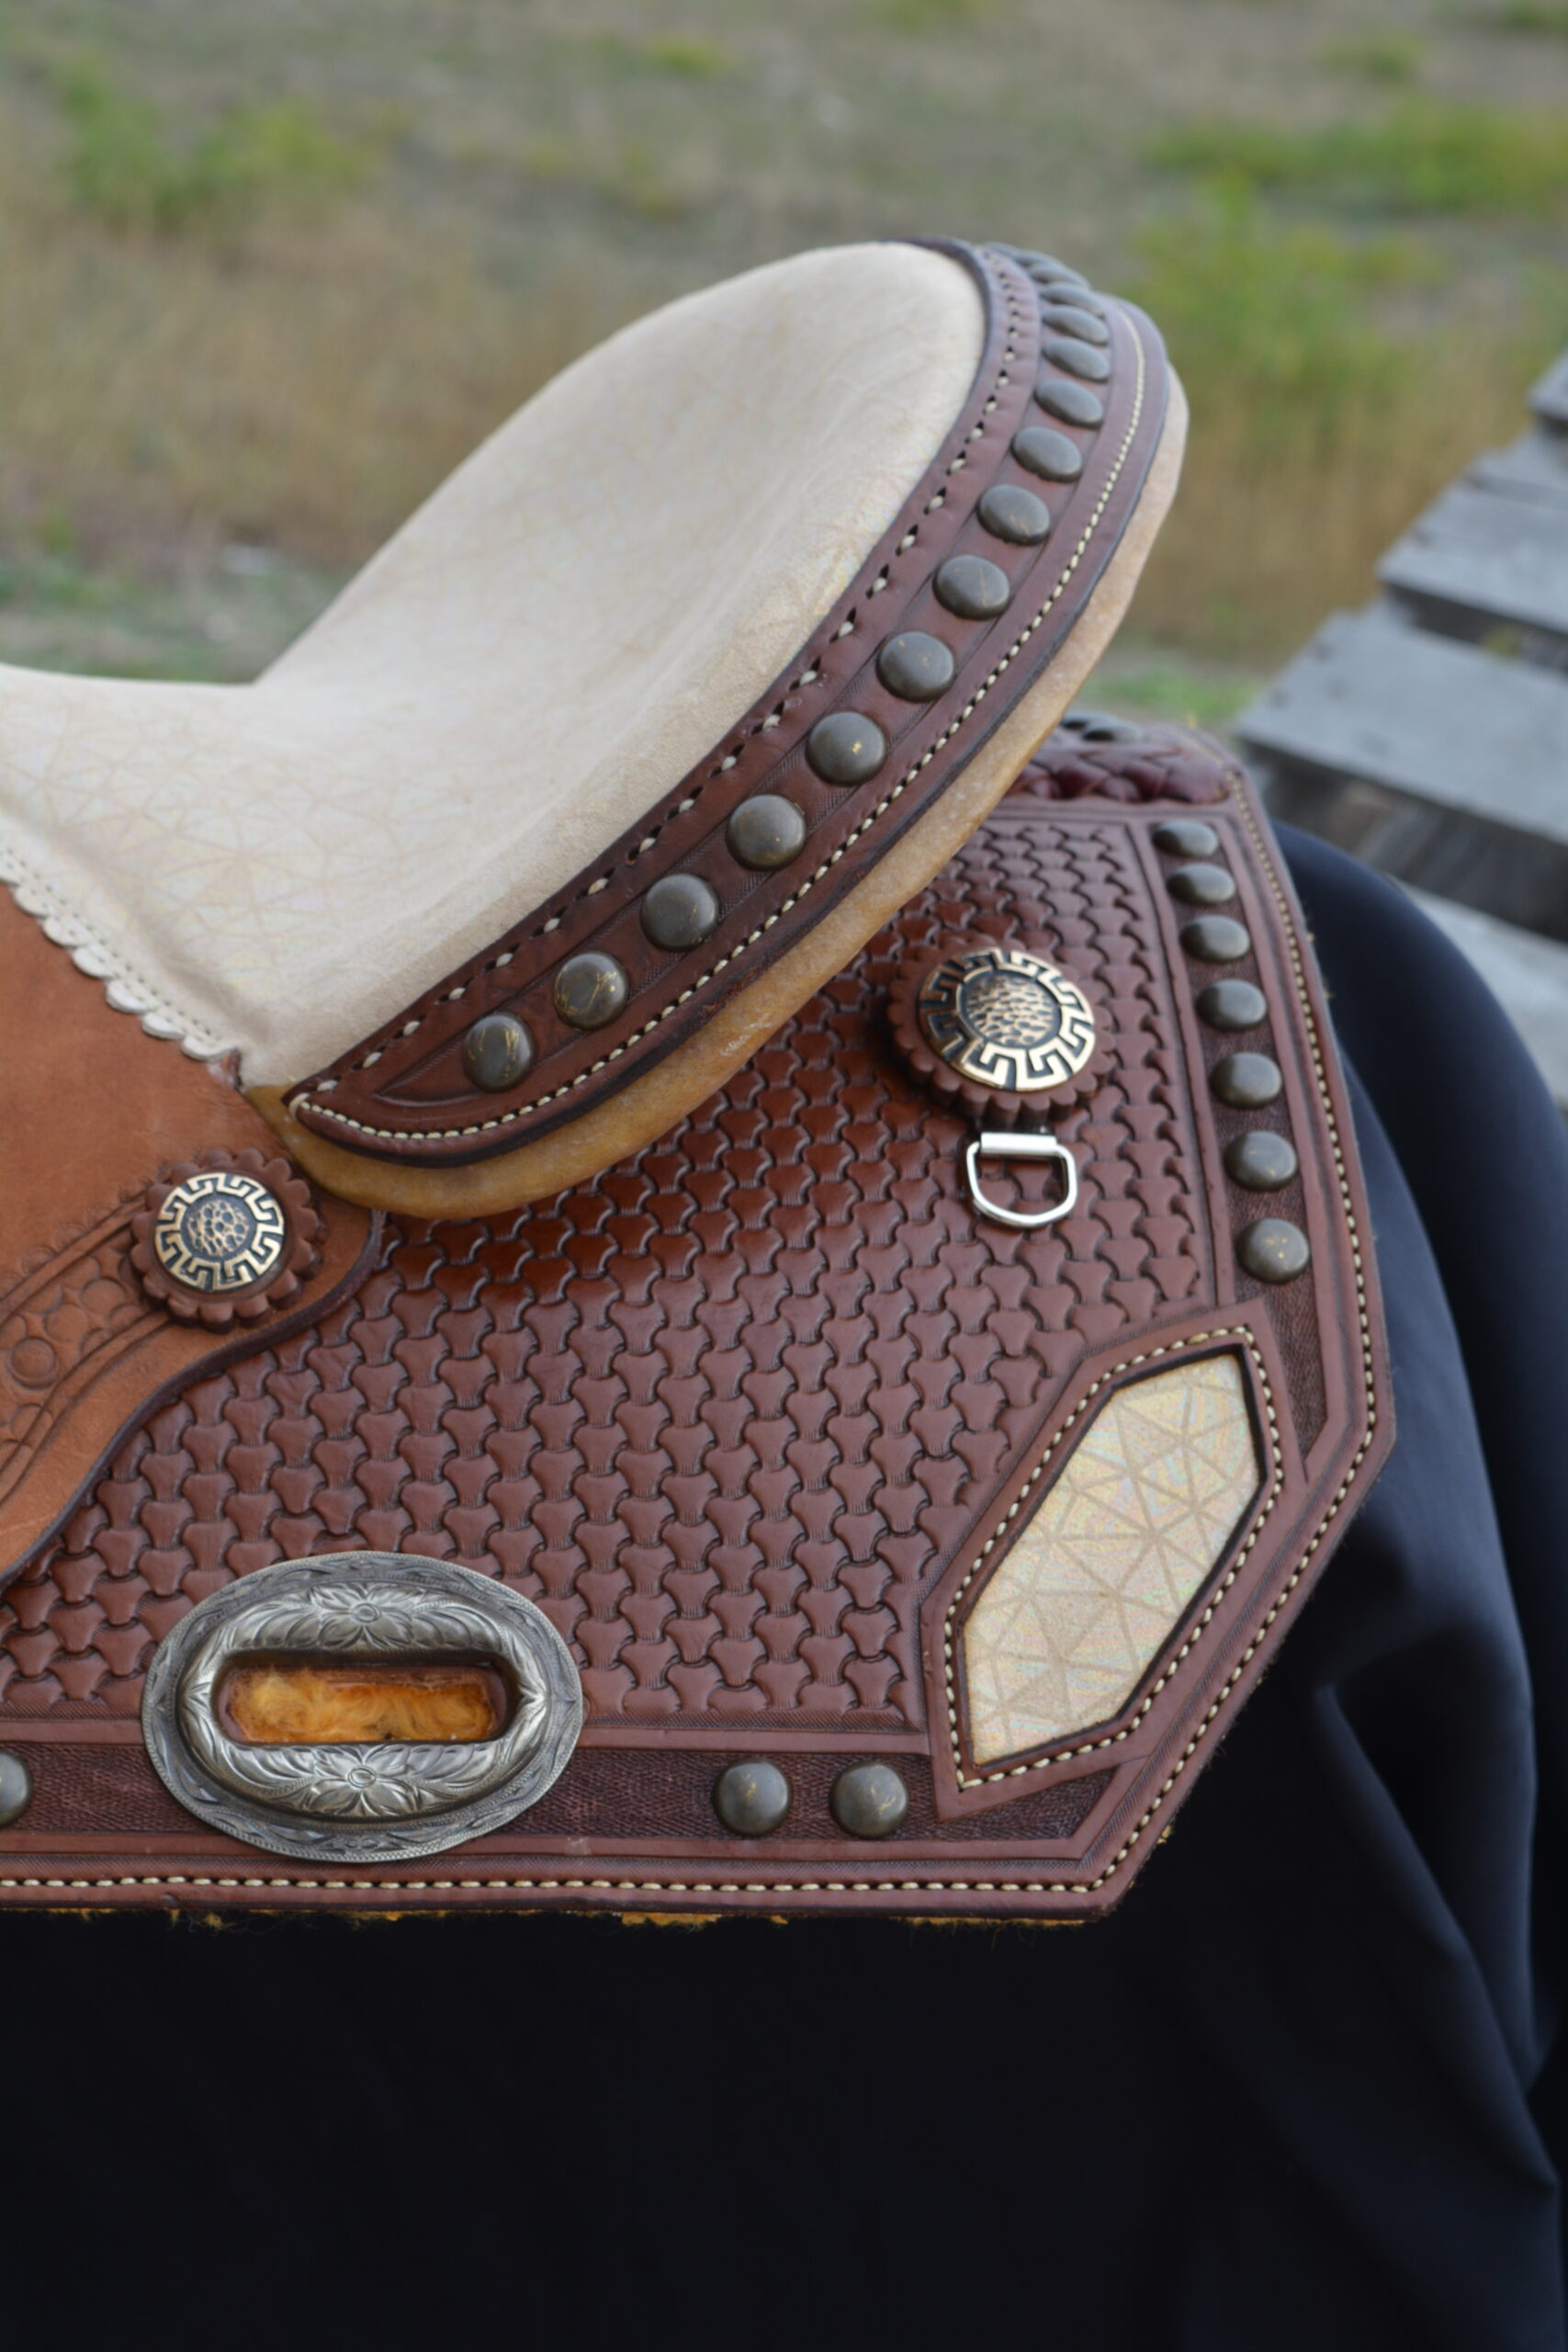 Barrel Saddle with inlay and spotting details